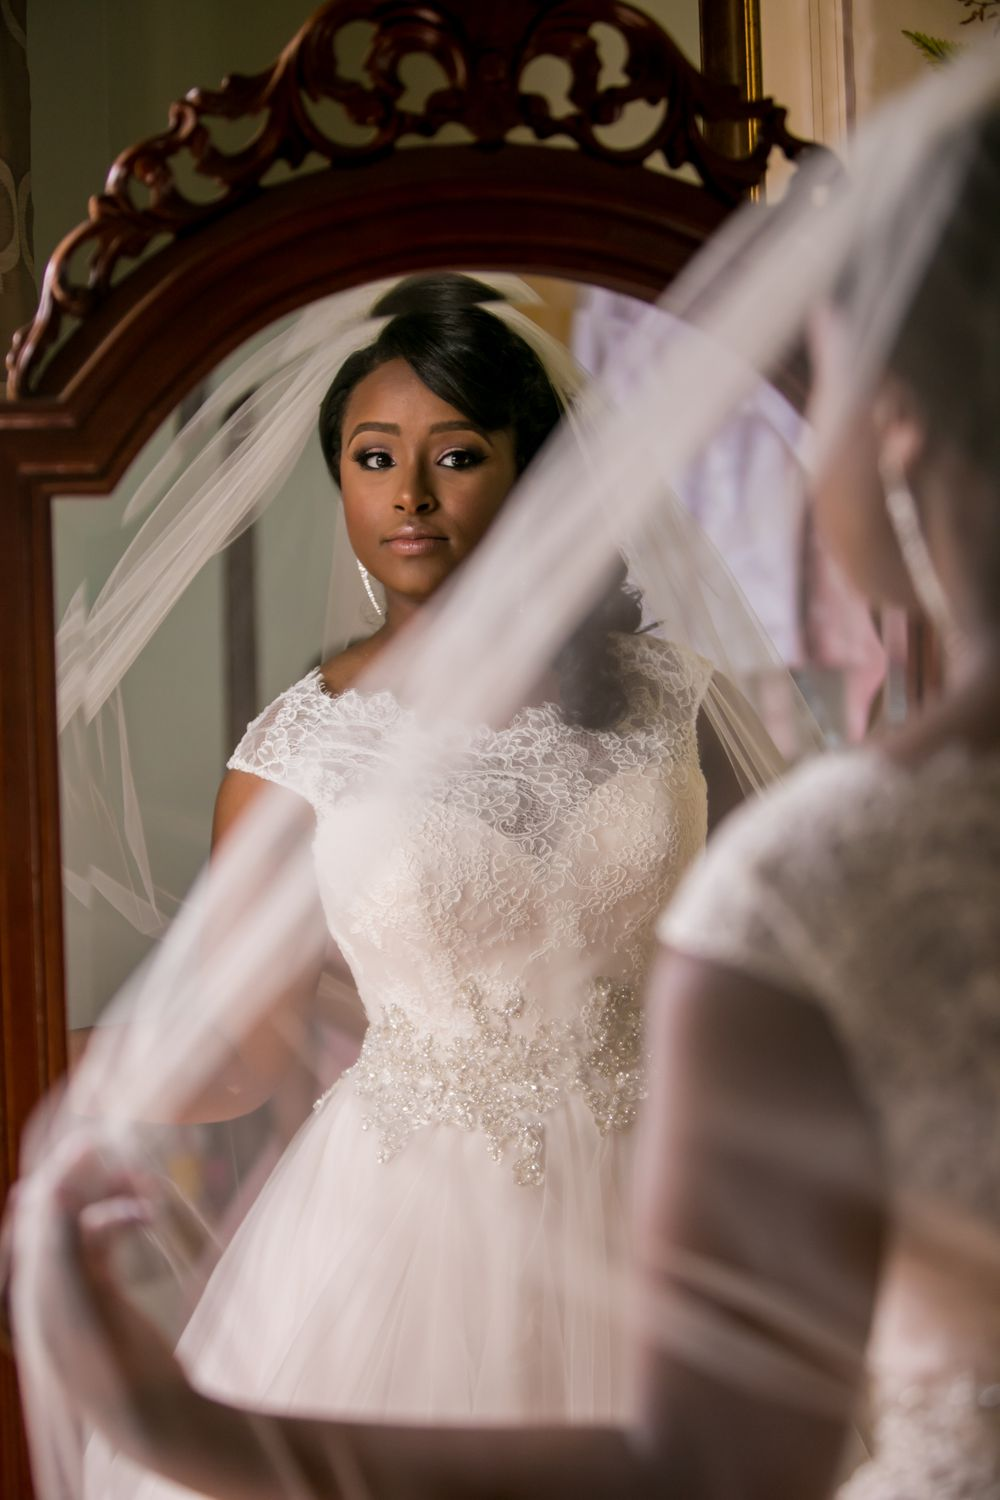 Bride Jamil'ya looks in the mirror before her wedding ceremony at the Lace House in Columbia, SC